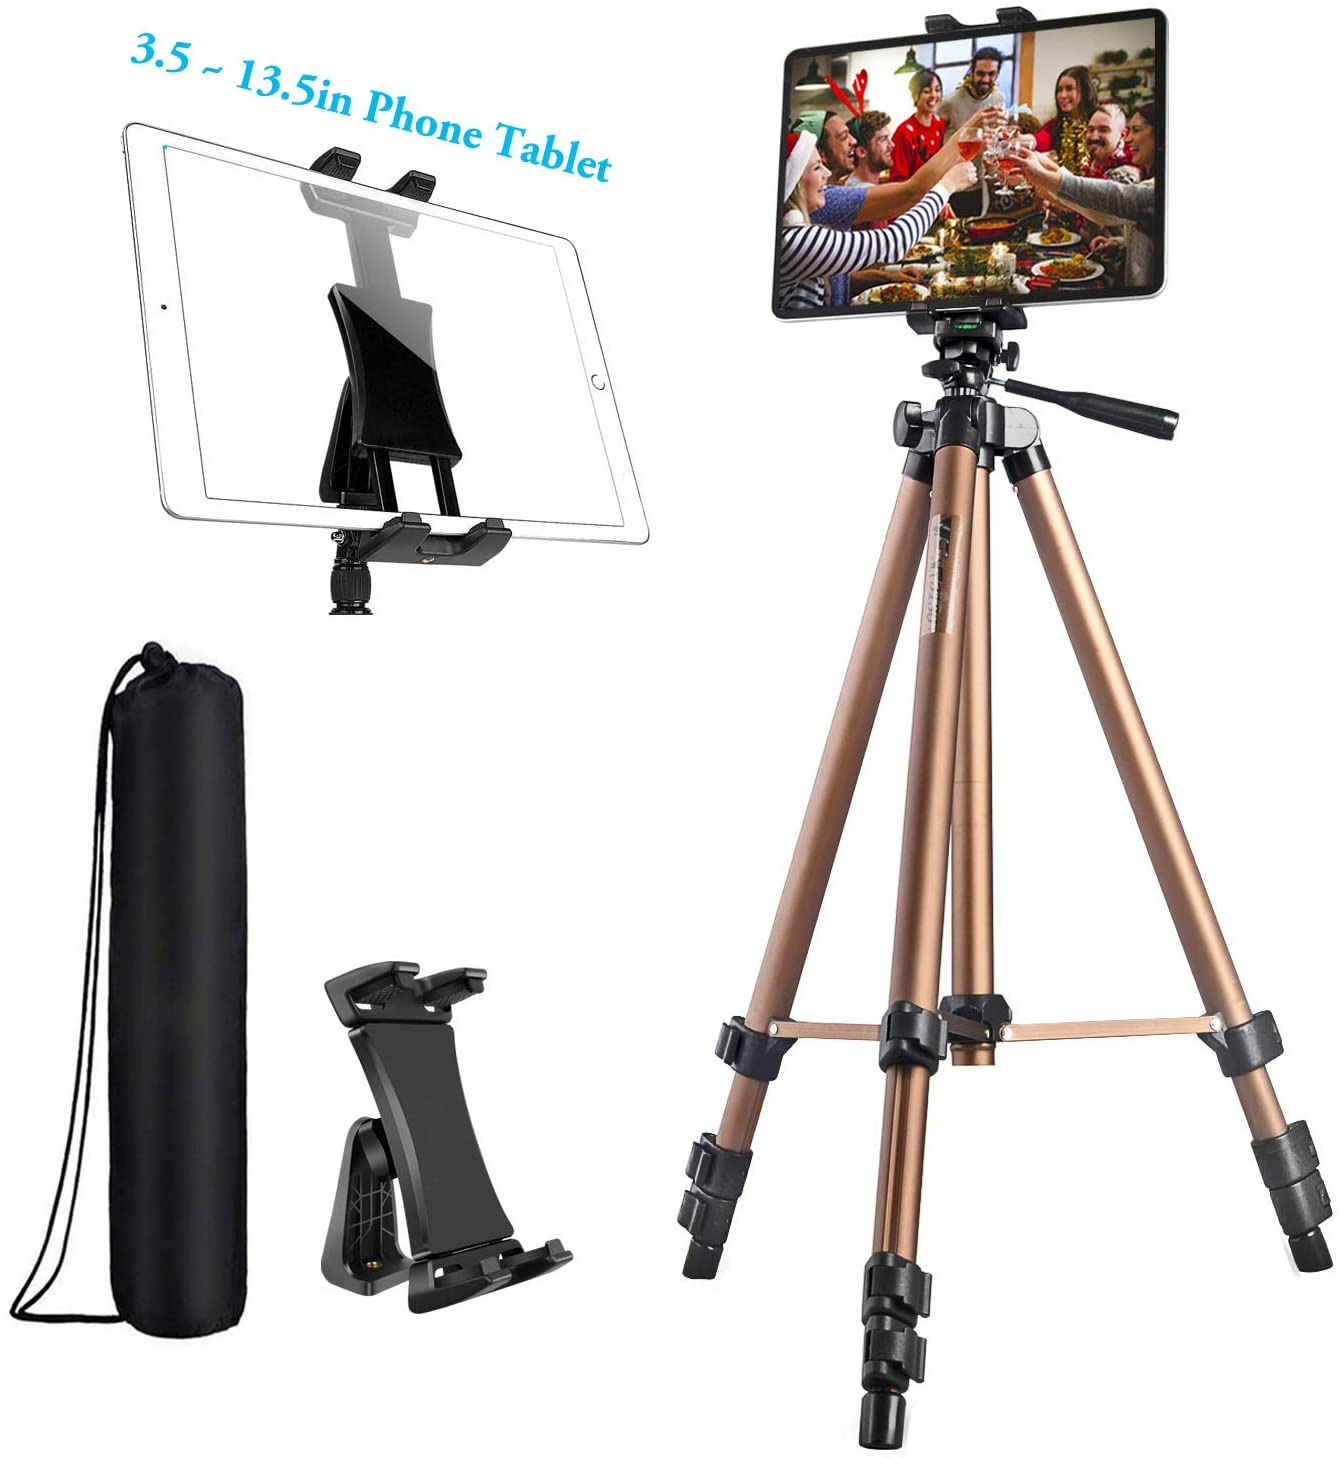 IPad Tripod, Tablet Tripod Stand 58 inch Adjustable Height Aluminum Mount Holder for iPad Pro 12.9 11 10.5, iPad Air, iPad Mini, Surface Pro,Nexus,Galaxy Tab and 3.5 to 13.5in Phone Tablet - Champagne